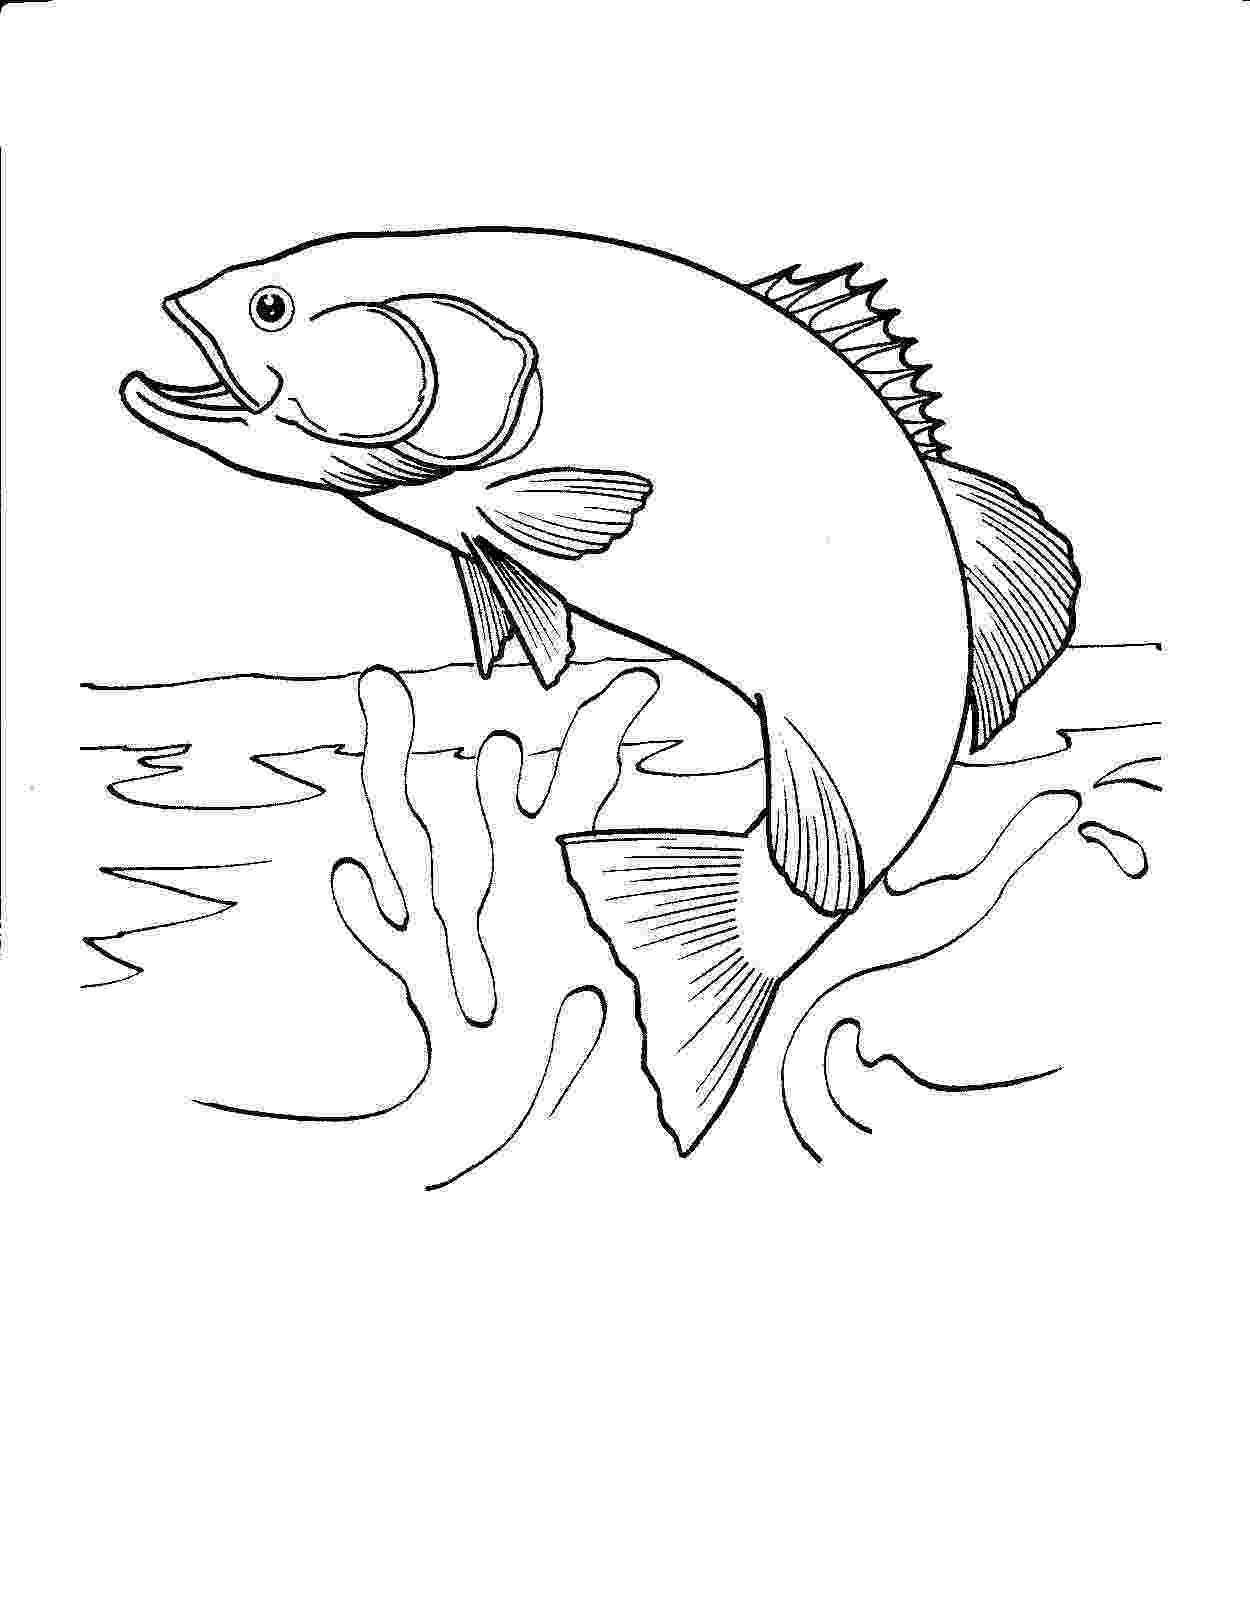 fishing coloring pages printable free printable fish coloring pages for kids cool2bkids fishing pages printable coloring